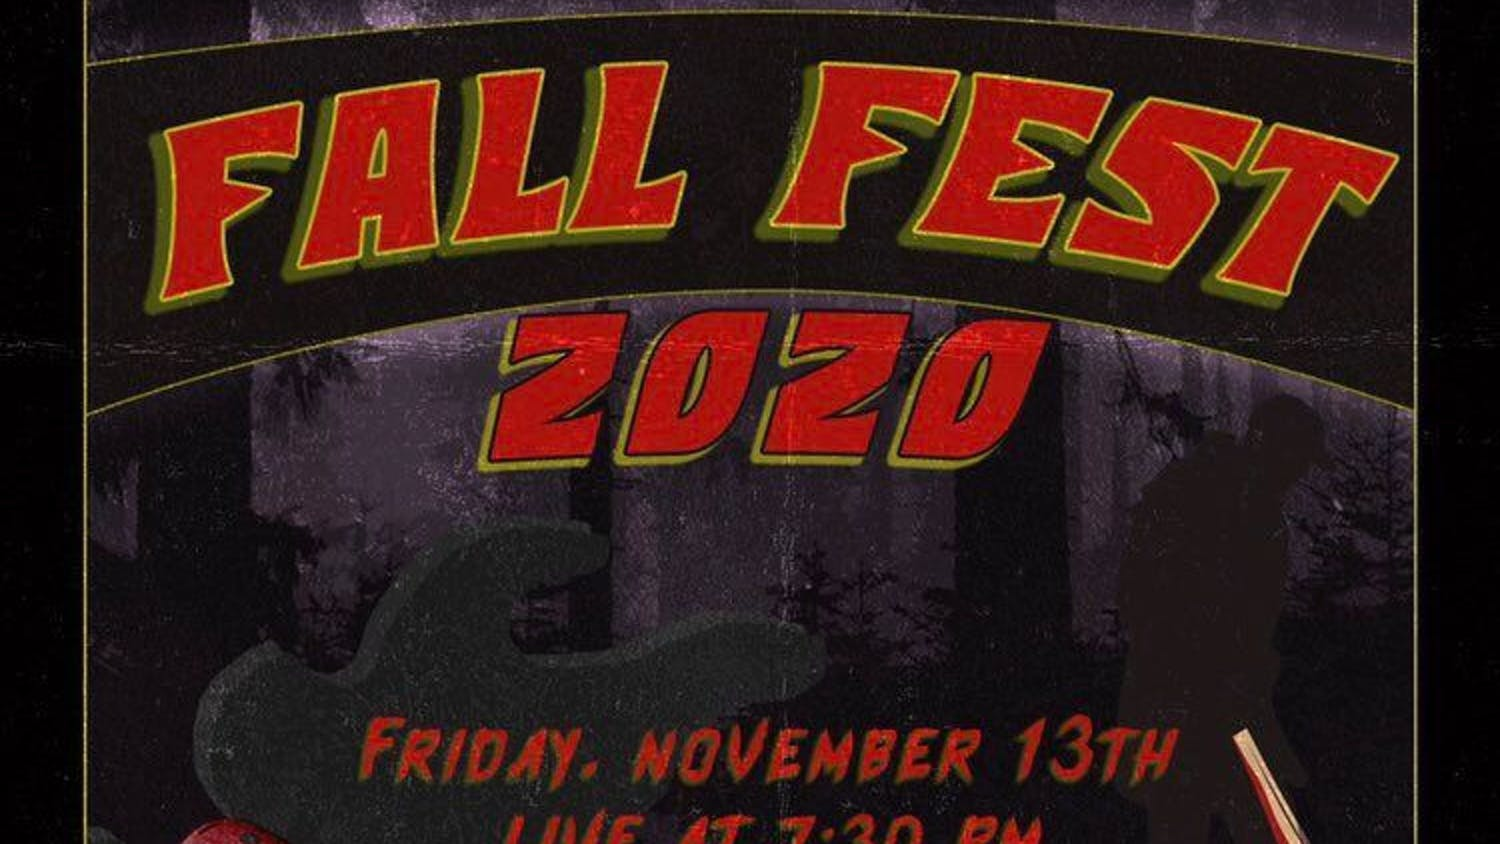 Swamp Records is set to host its annual Fall Fest Saturday at 7:30 p.m. The show will be live streamed via YouTube for the first time.